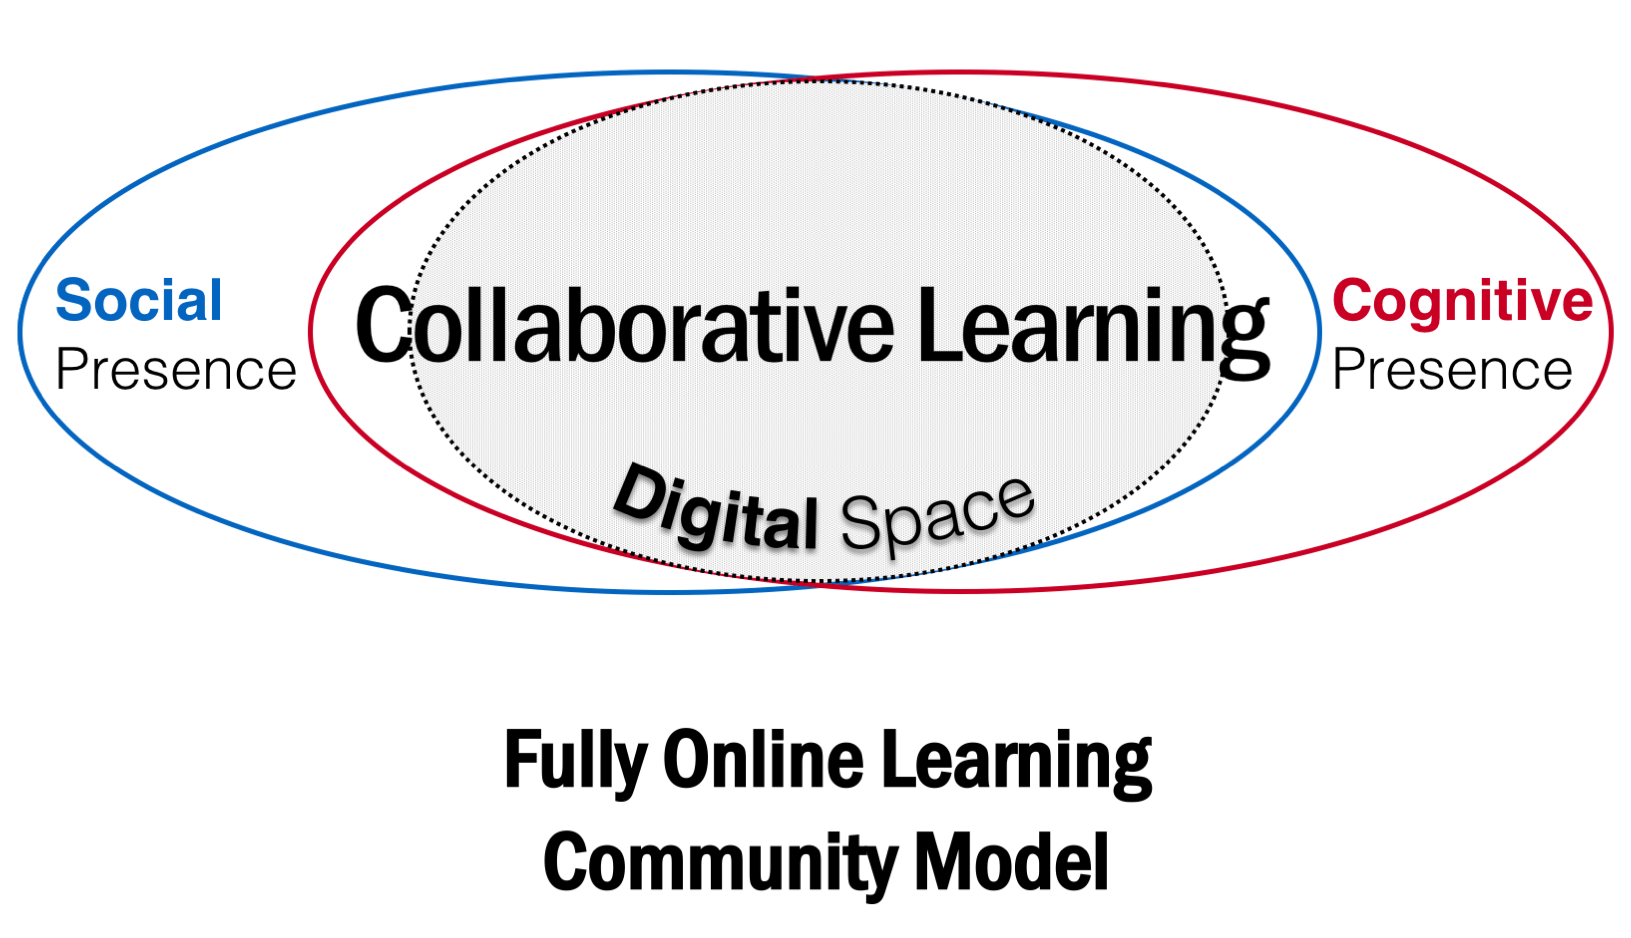 vanOostveen Fully ONline Learning Community Model